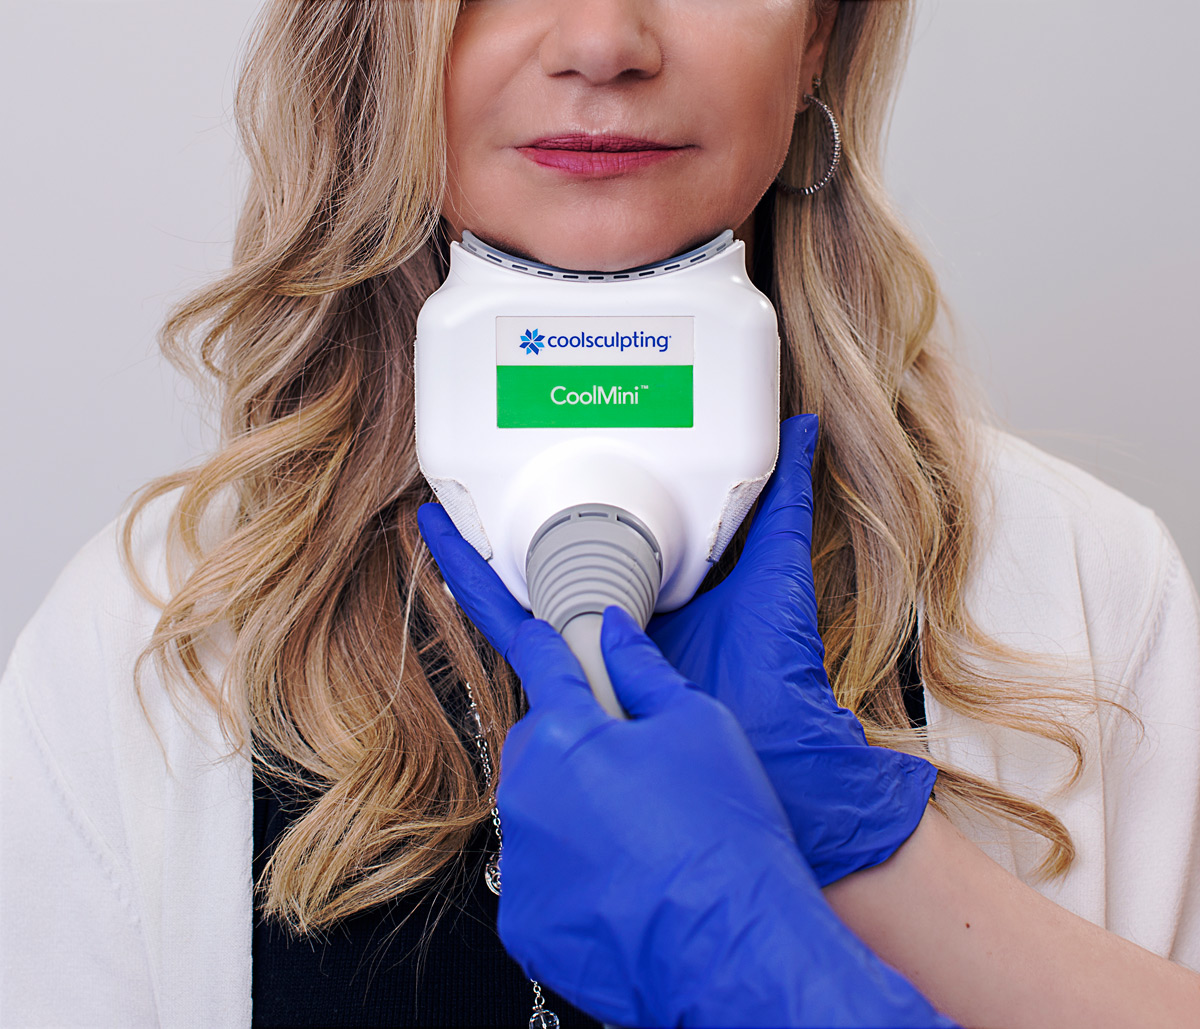 CoolSculpting neck treatment at Riverchase Dermatology in Miami, FL.